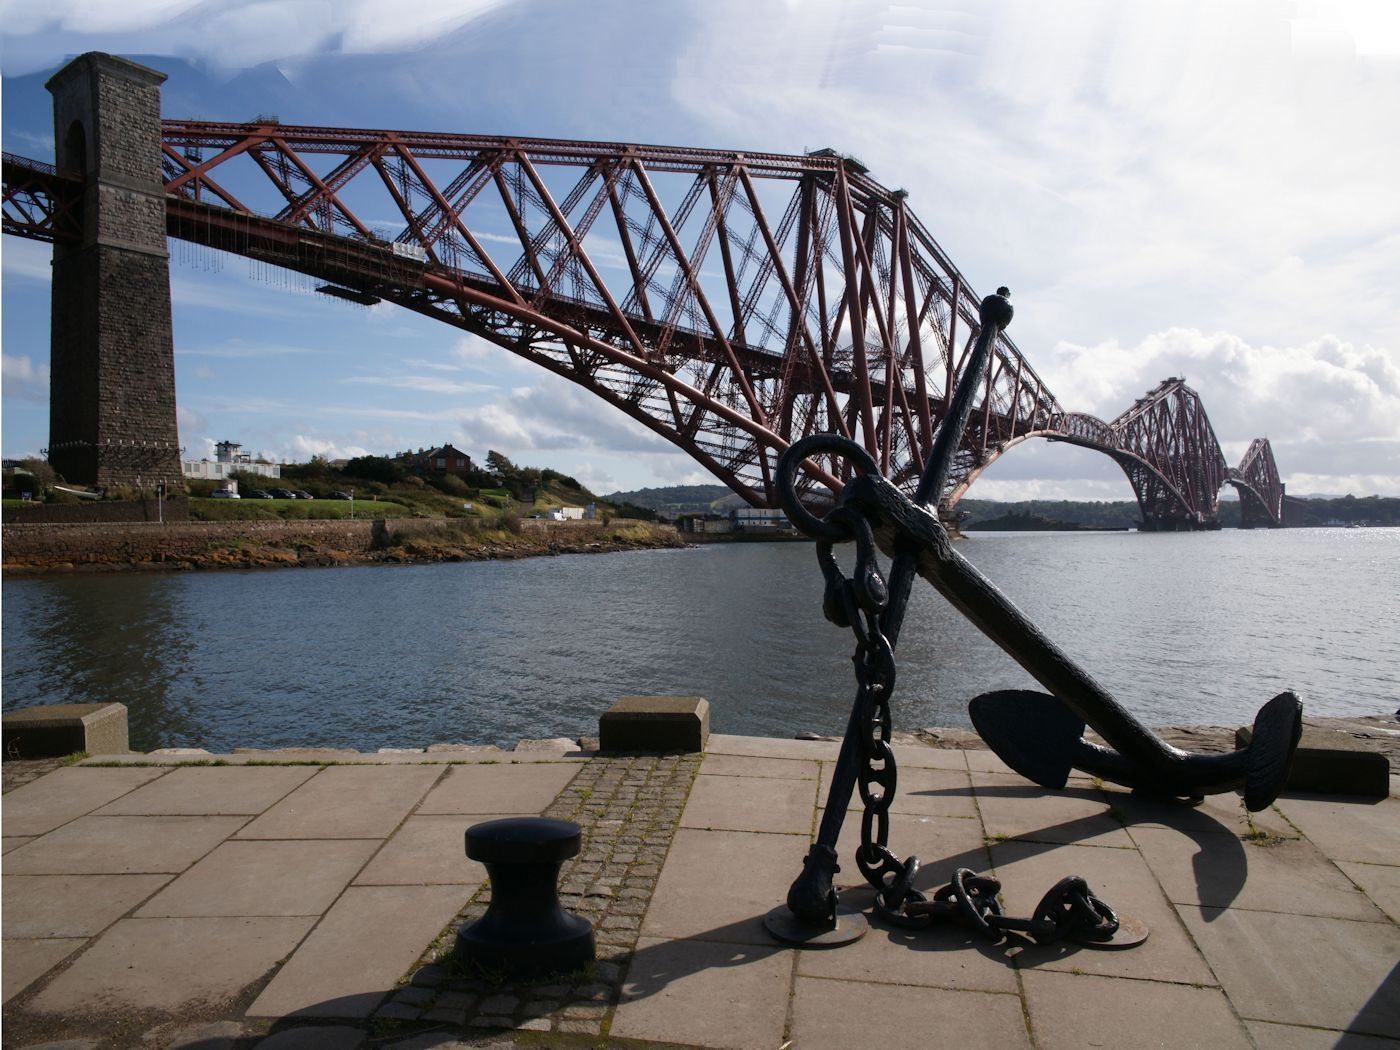 THE BRIDGE AND ANCHOR  by Jim Williams